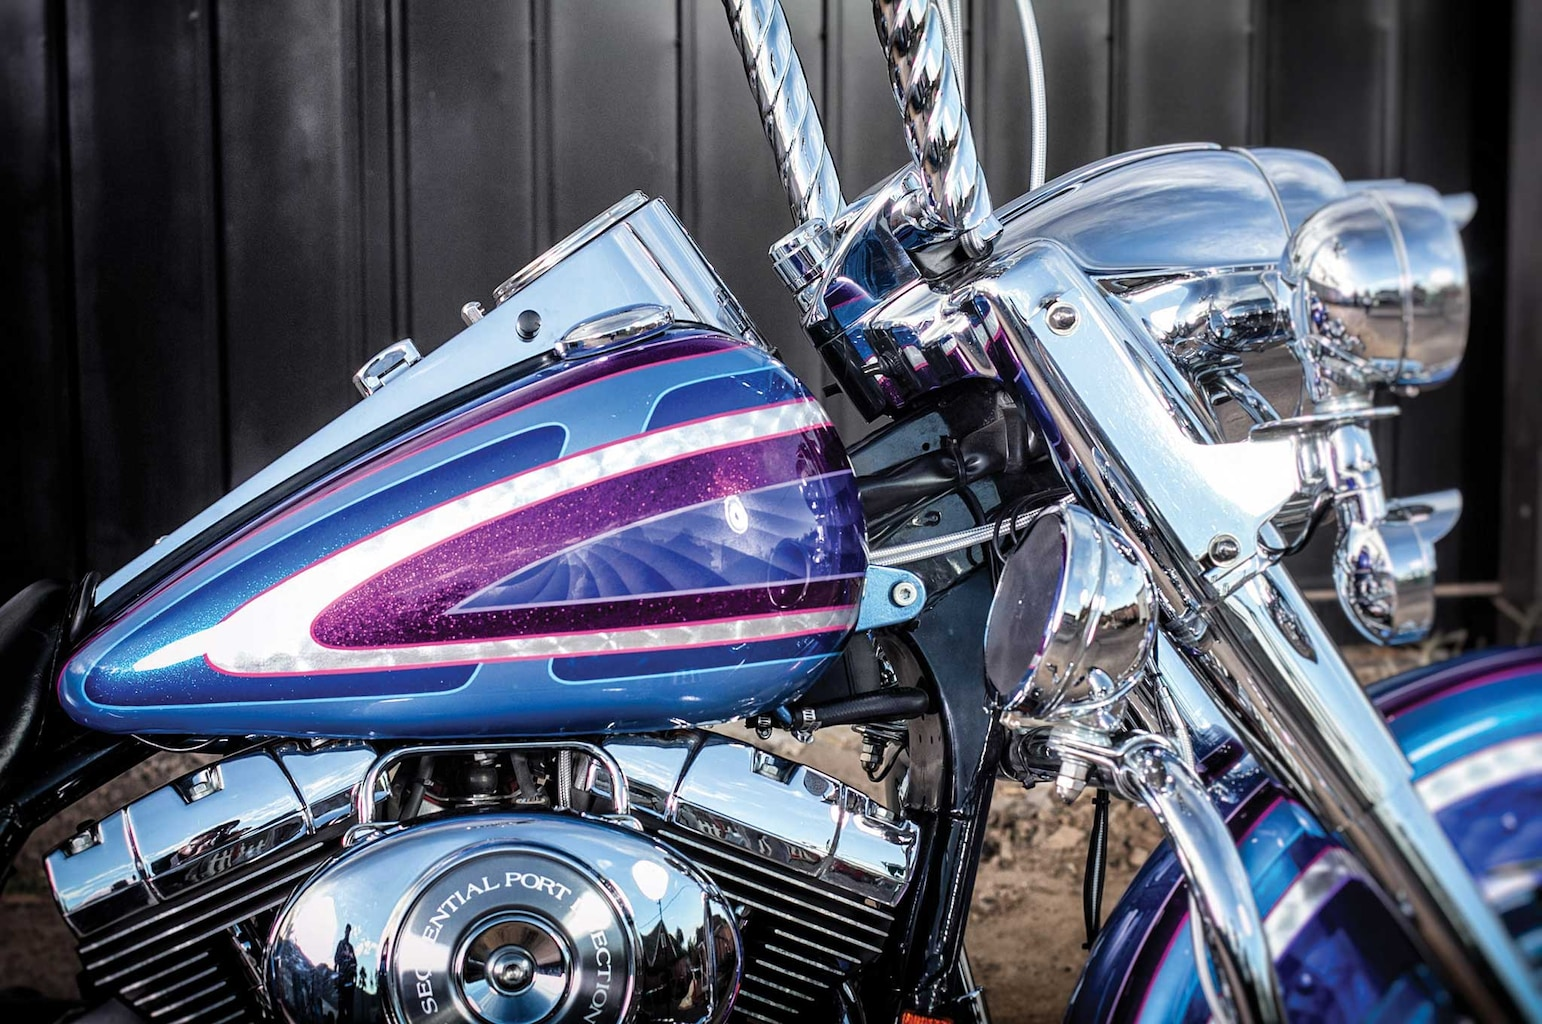 Twisted ape hangars, extended fishtails, and killer custom paint make this Road King the king of the road!